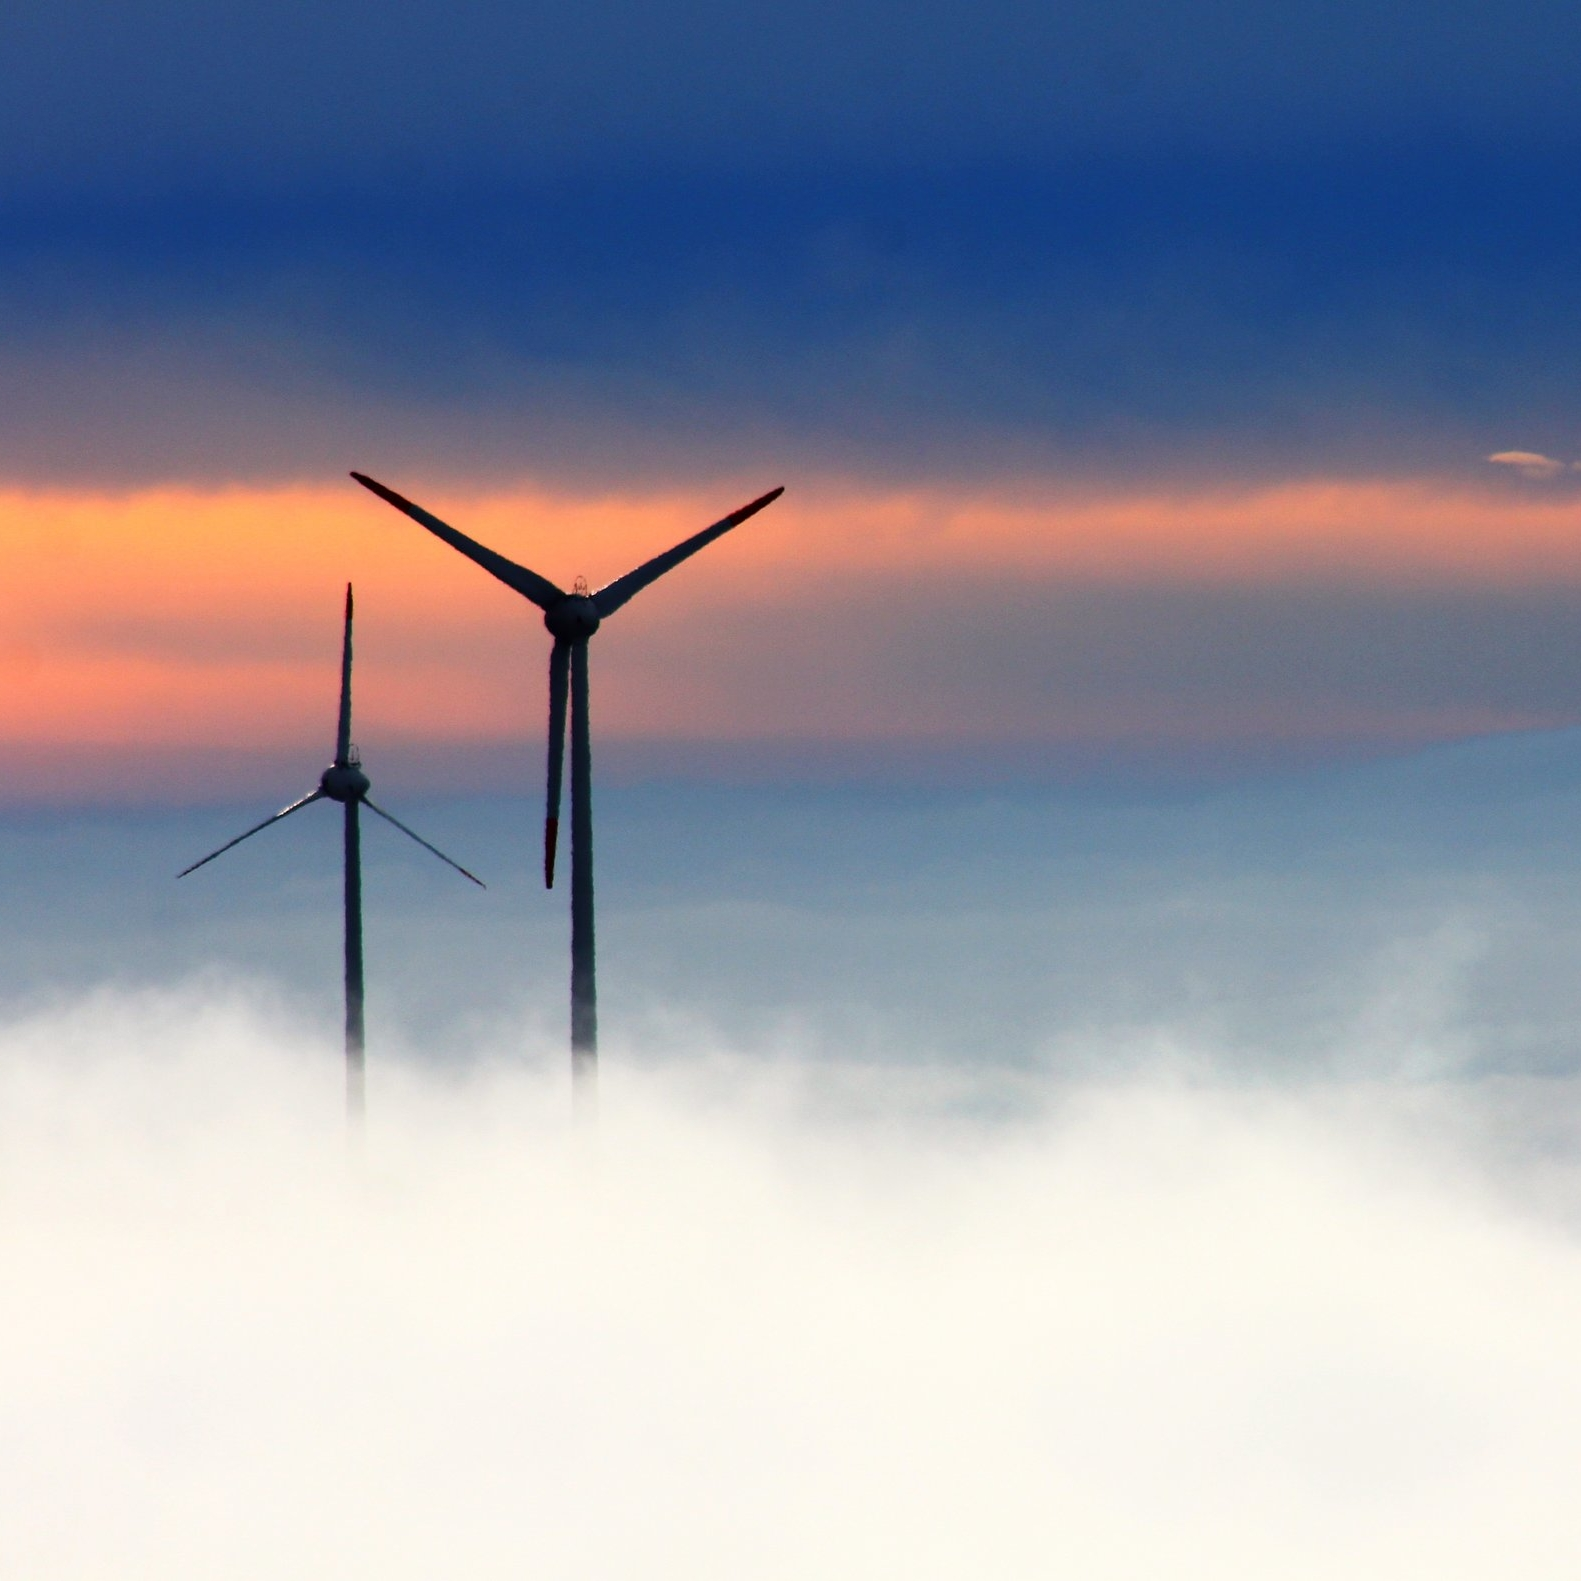 windrader-wind-power-fichtelberg-wind-park.jpg